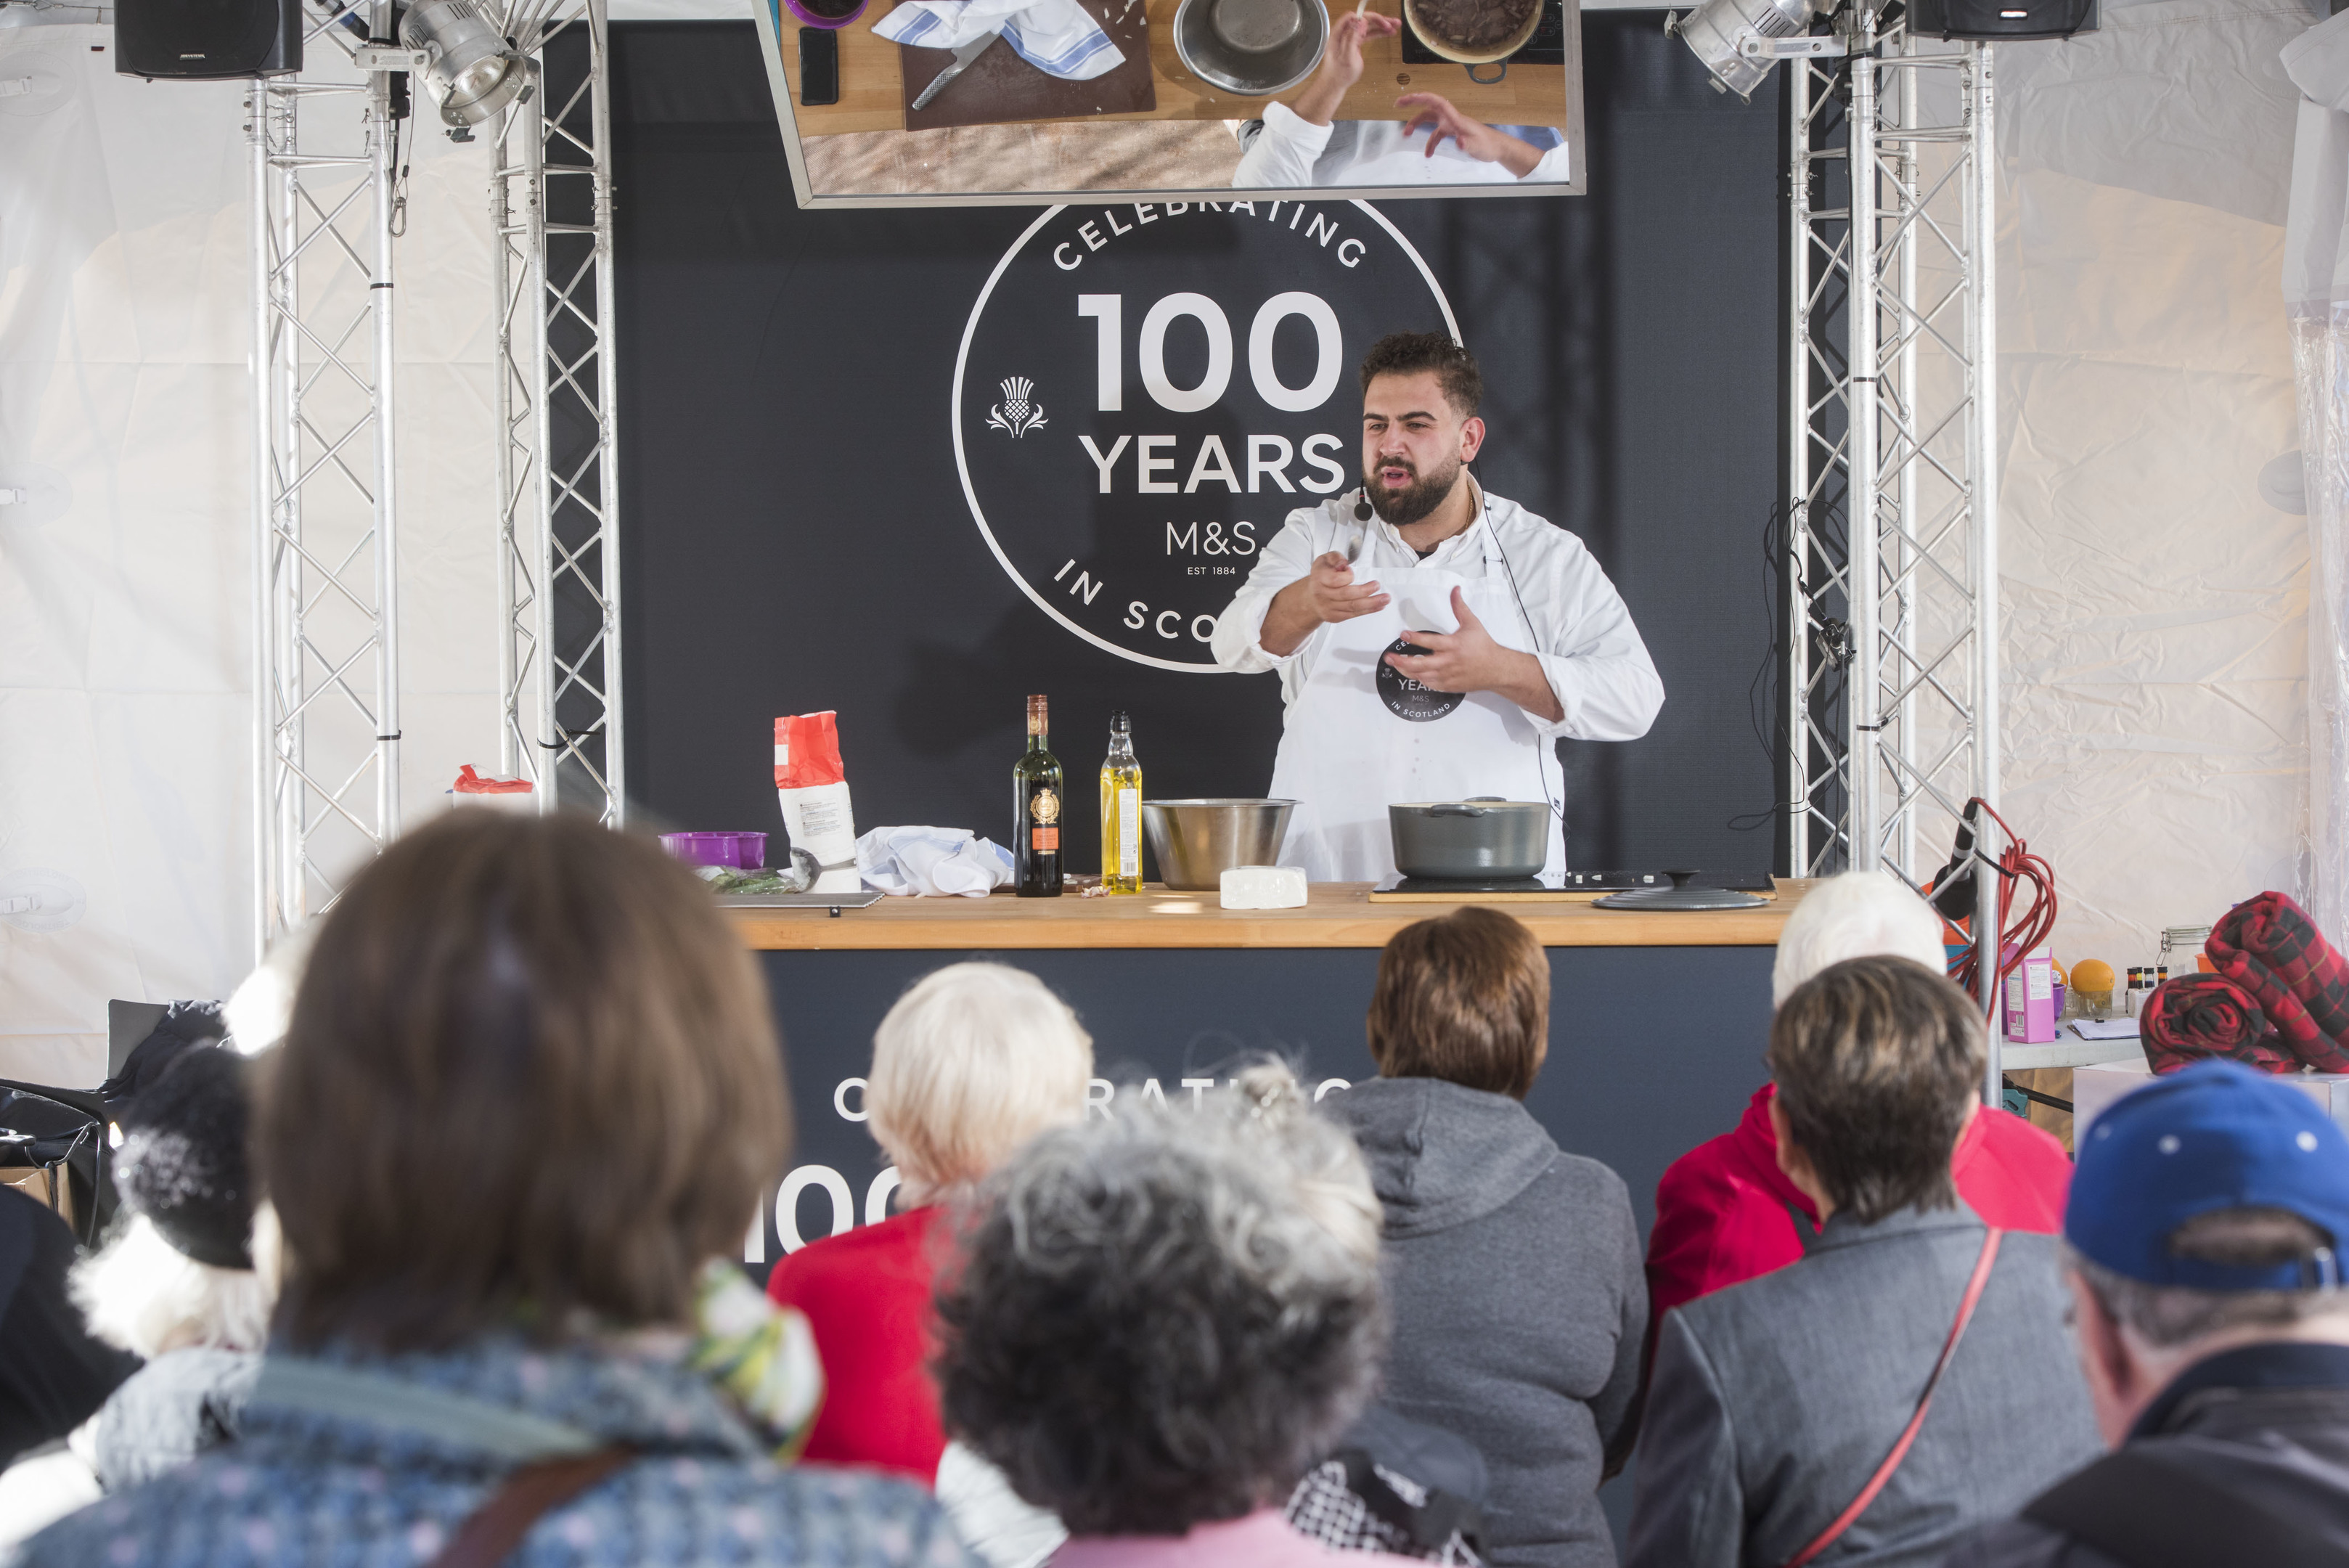 Chef Gio Pia demonstrates his skills on the M&S stand.